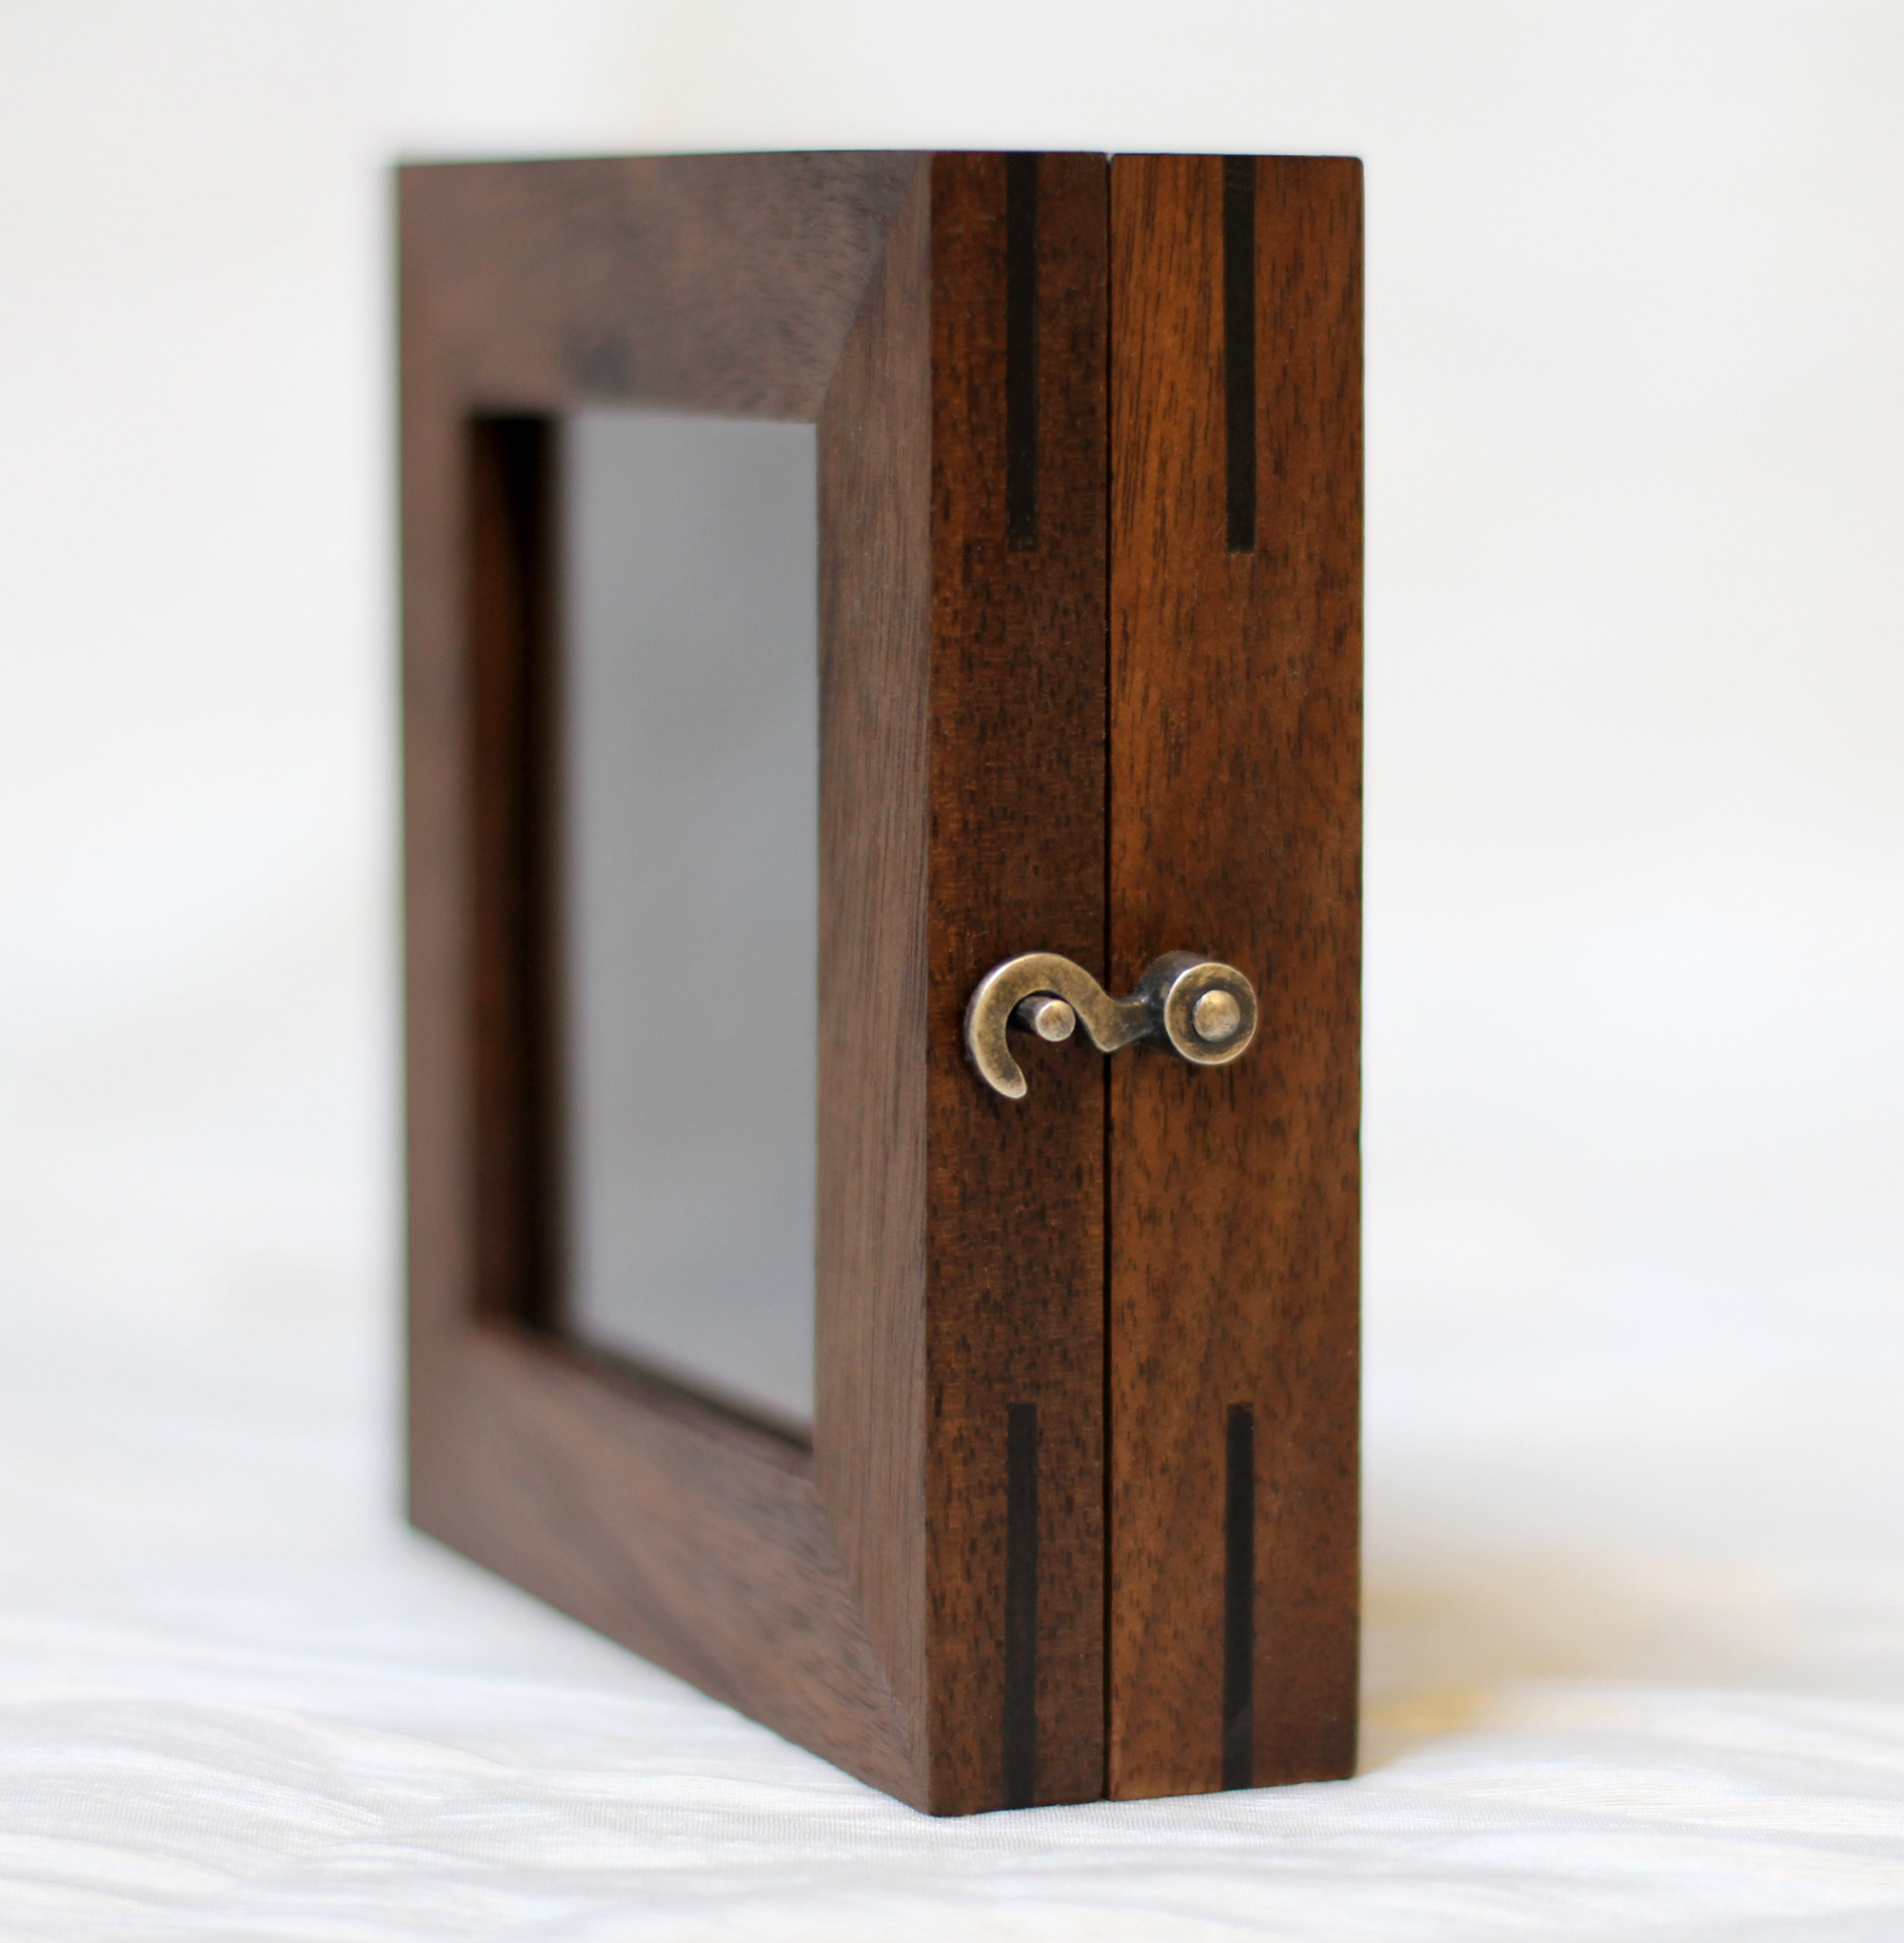 WALNUT JEWELRY BOX,  2011. Walnut, ebony, silver latch, steel hinges.